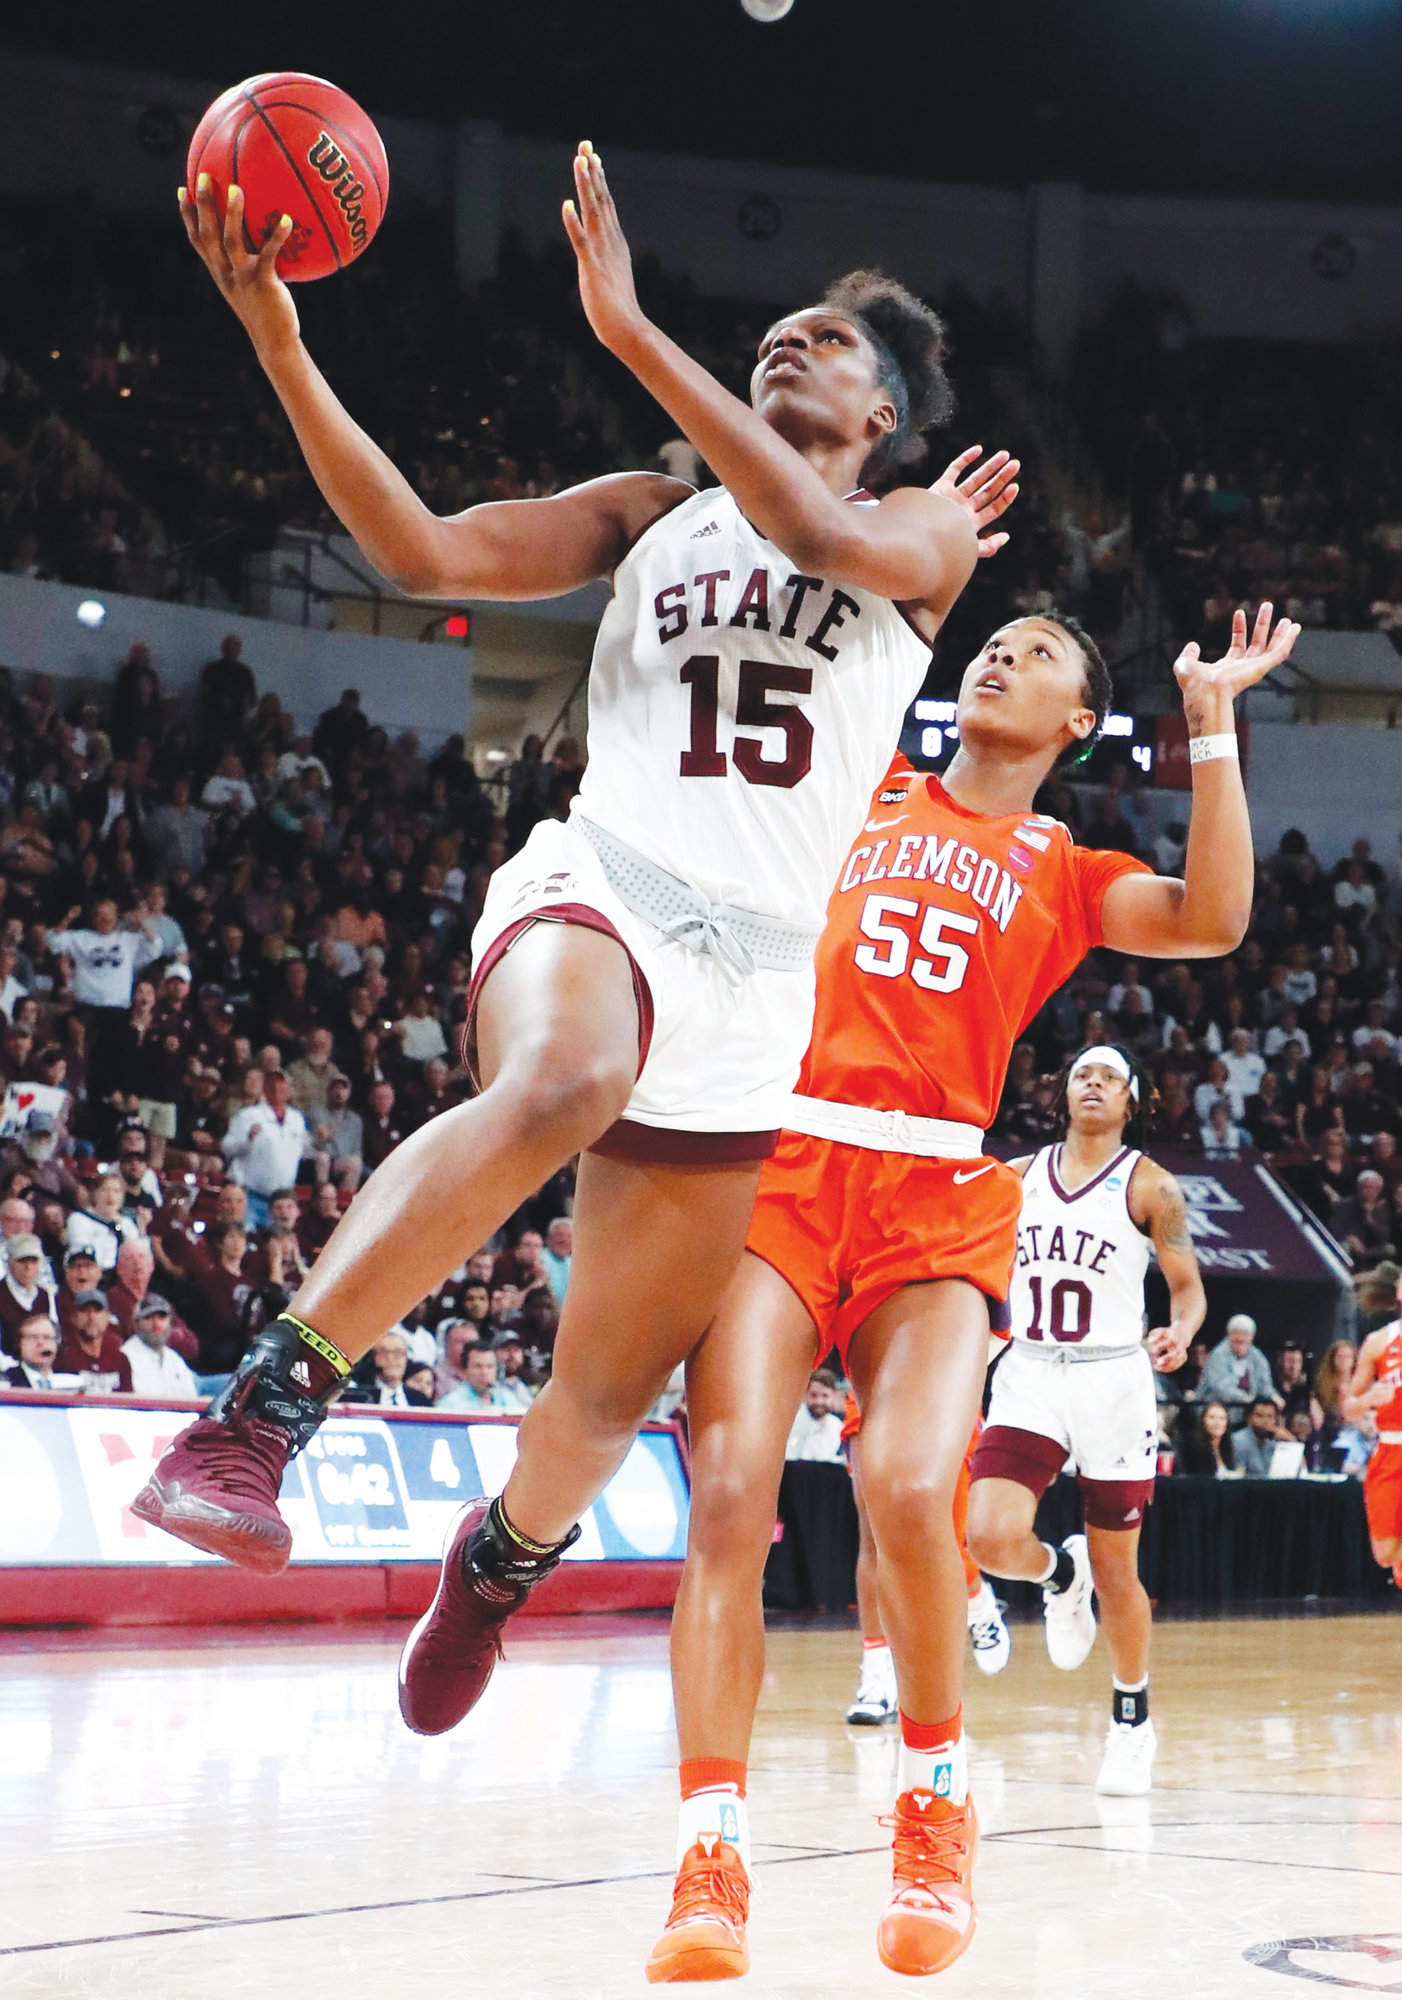 THE ASSOCIATED PRESSMississippi State center Teaira McCowan (15) shoots a layup past Clemson forward Tylar Bennett (55) during the first half of a second-round women's college basketball game in the NCAA Tournament in Starkville, Miss., Sunday, March 24, 2019.